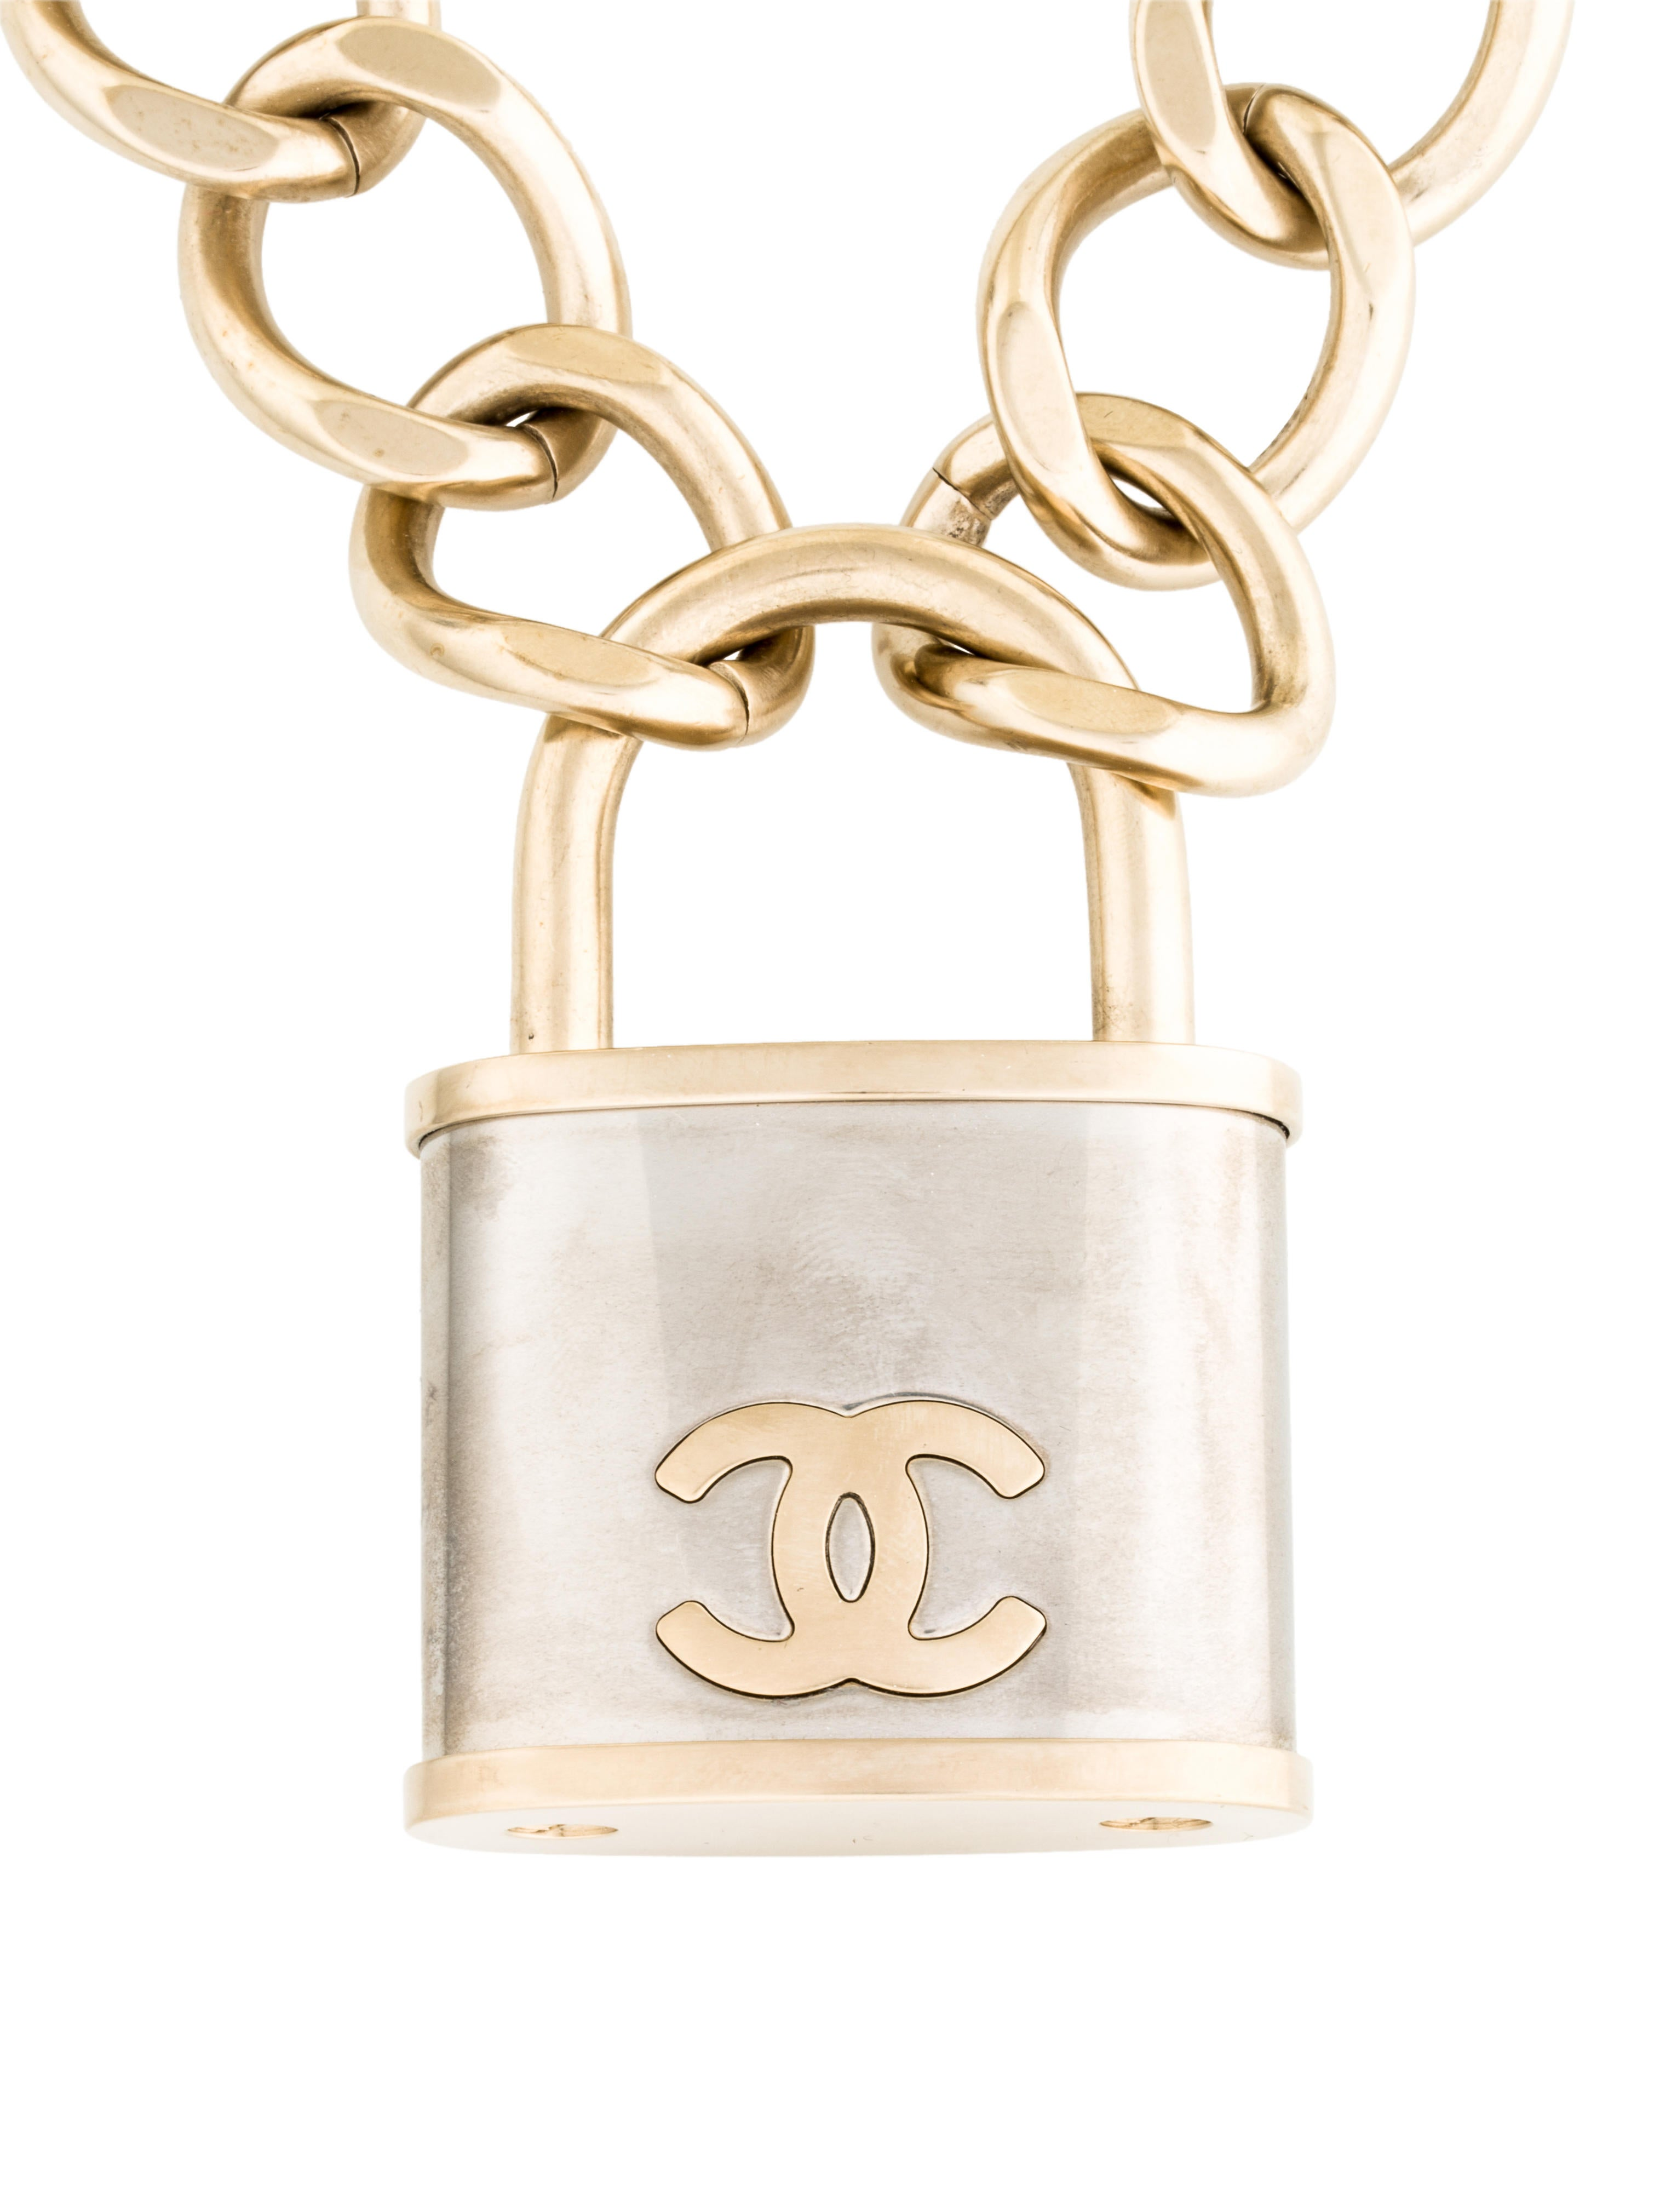 Chanel Cc Padlock Statement Necklace W Tags Necklaces